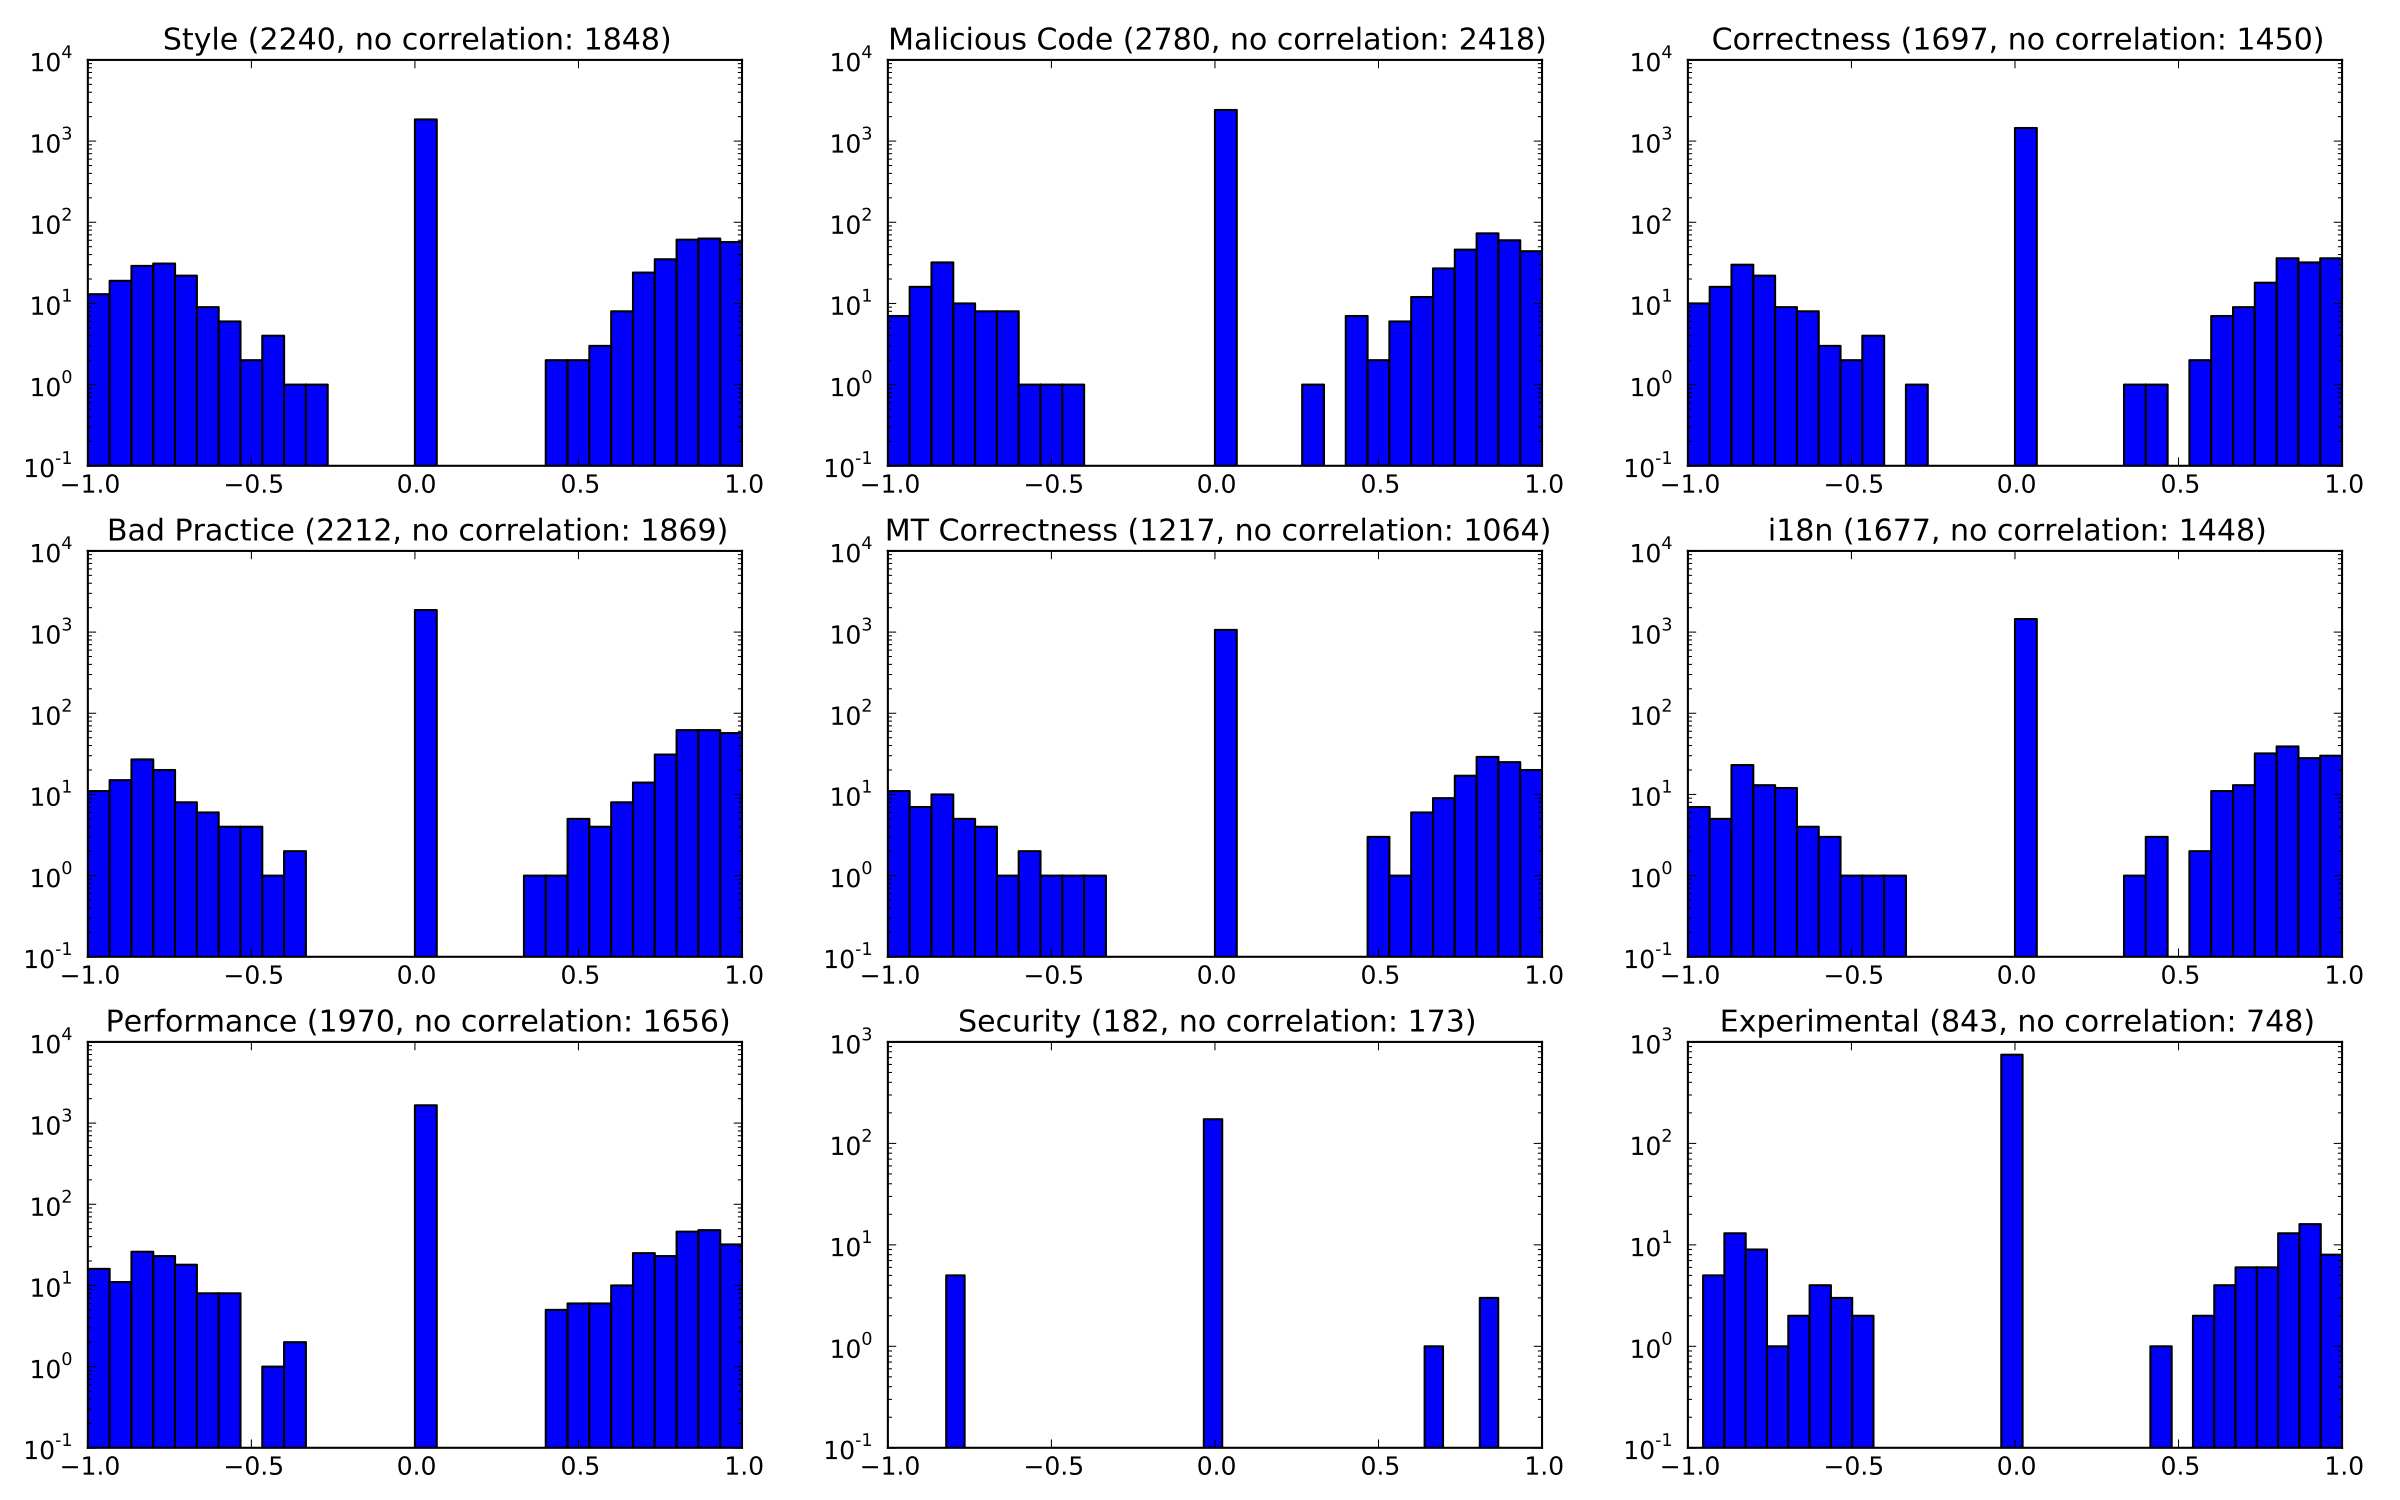 Histograms of correlations between bug counts and version ordinals per project. In brackets the total population size and the number of no correlation instances.